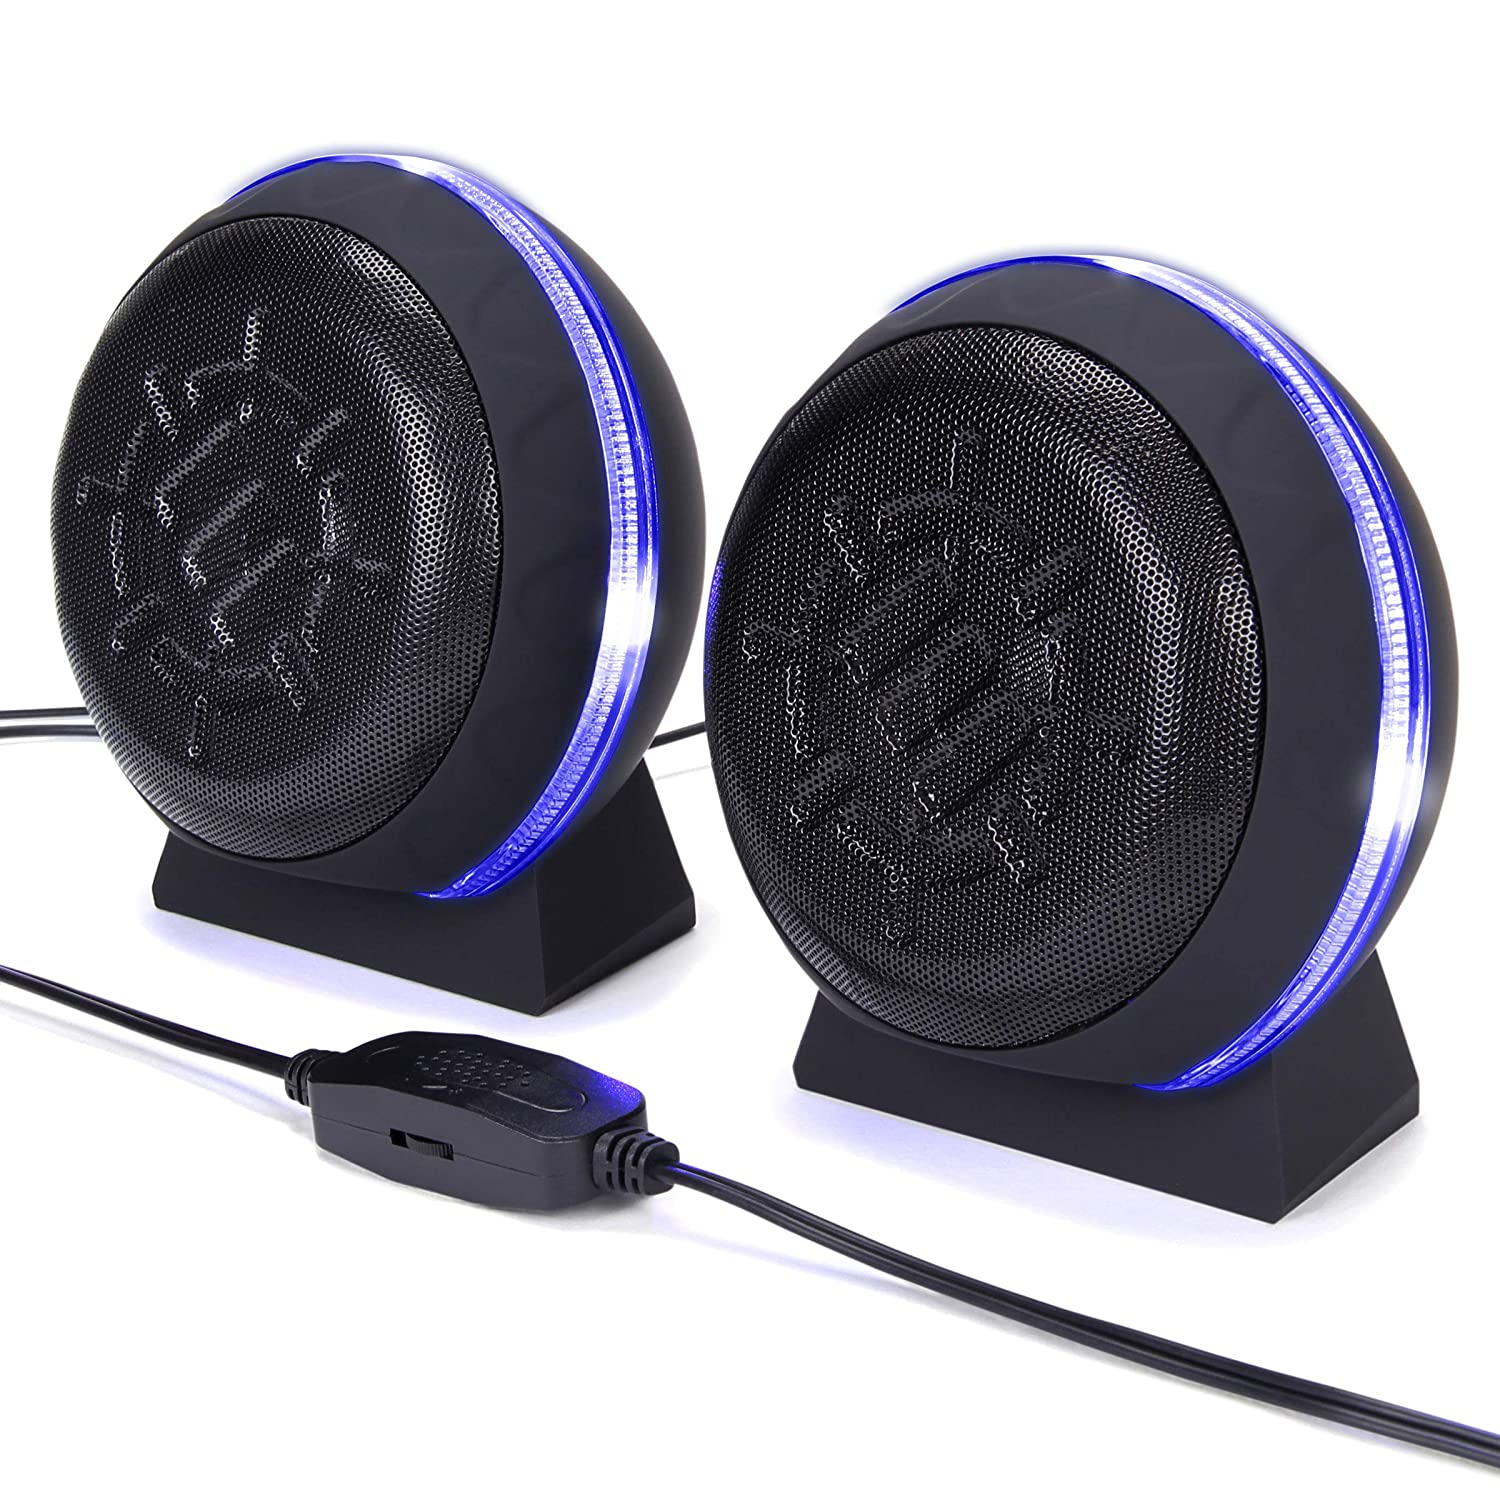 ENHANCE SL2 USB Computer Speakers with LED Blue Glowing Lights, 3.5mm Wired Connection and in-Line Volume Control – 5 Watt Drivers, 2.0 Sound System for Gaming Desktop, Laptop, PC Computers